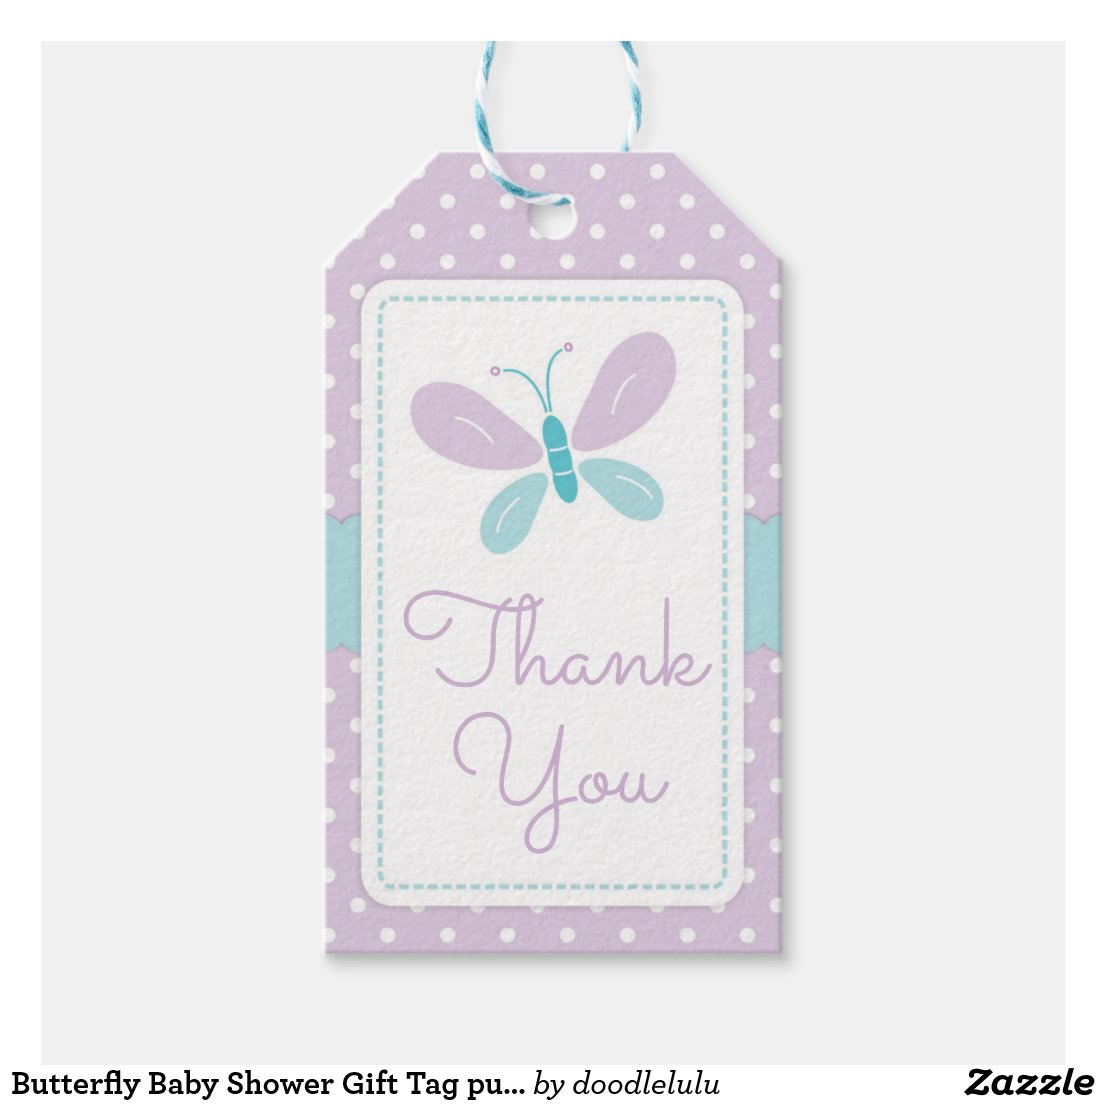 Butterfly Baby Shower Gift Tag purple and blue